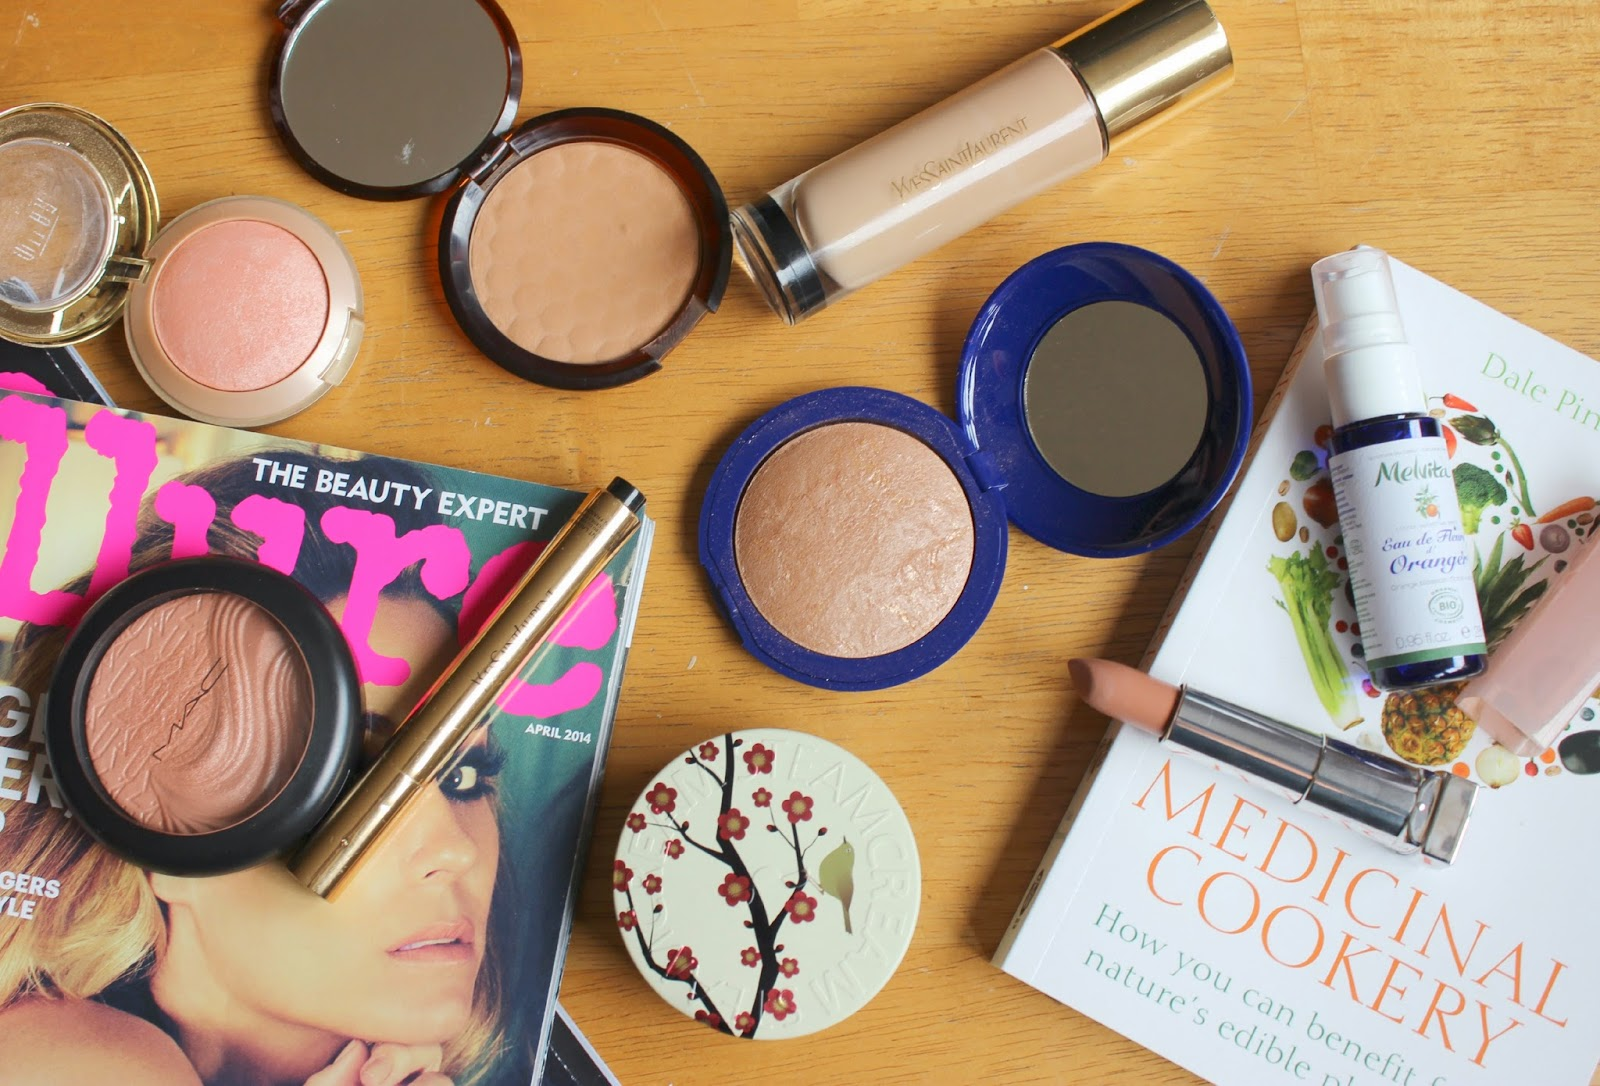 Going over the products which stood out for me in April